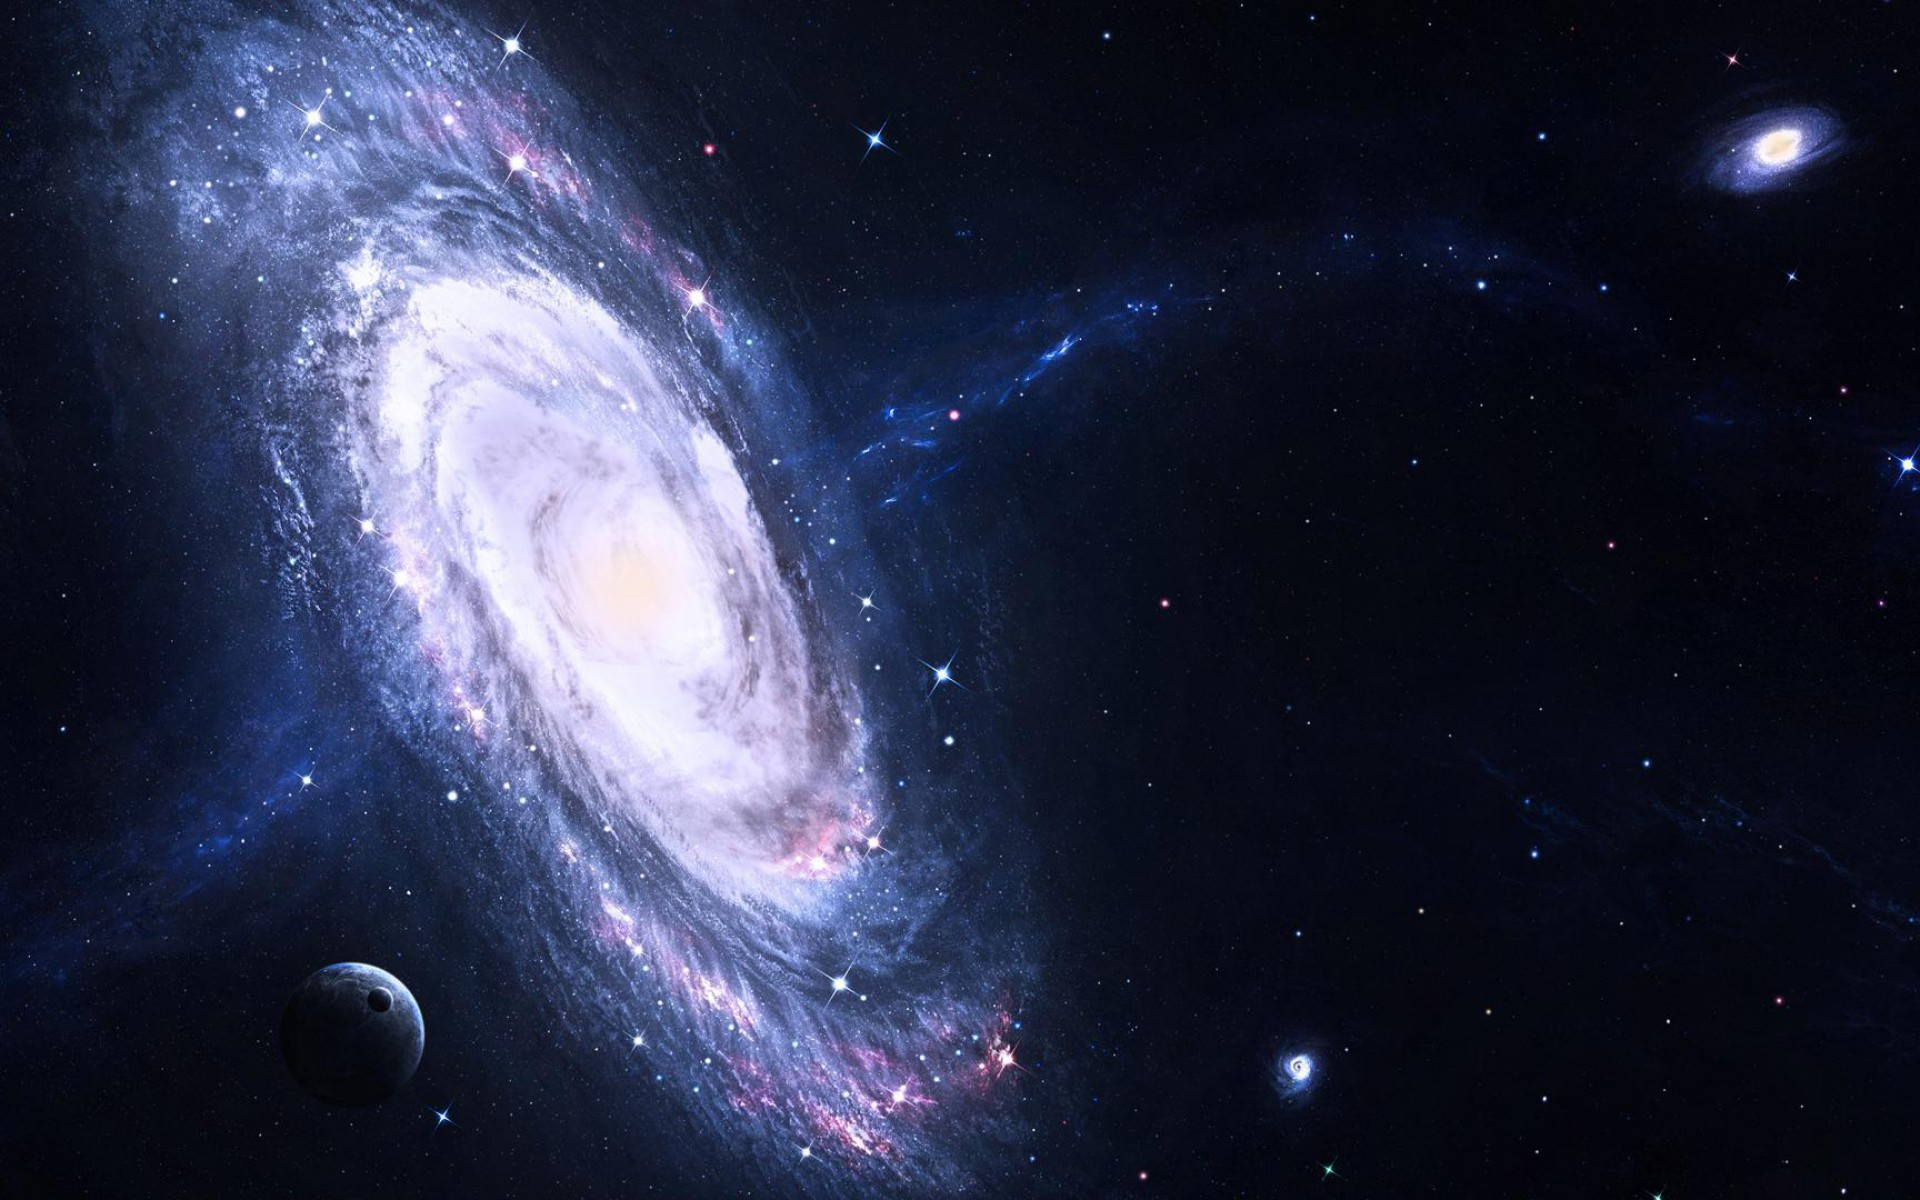 Moving Space Wallpaper - 1080p 4k Wallpaper Space Black Hole , HD Wallpaper & Backgrounds